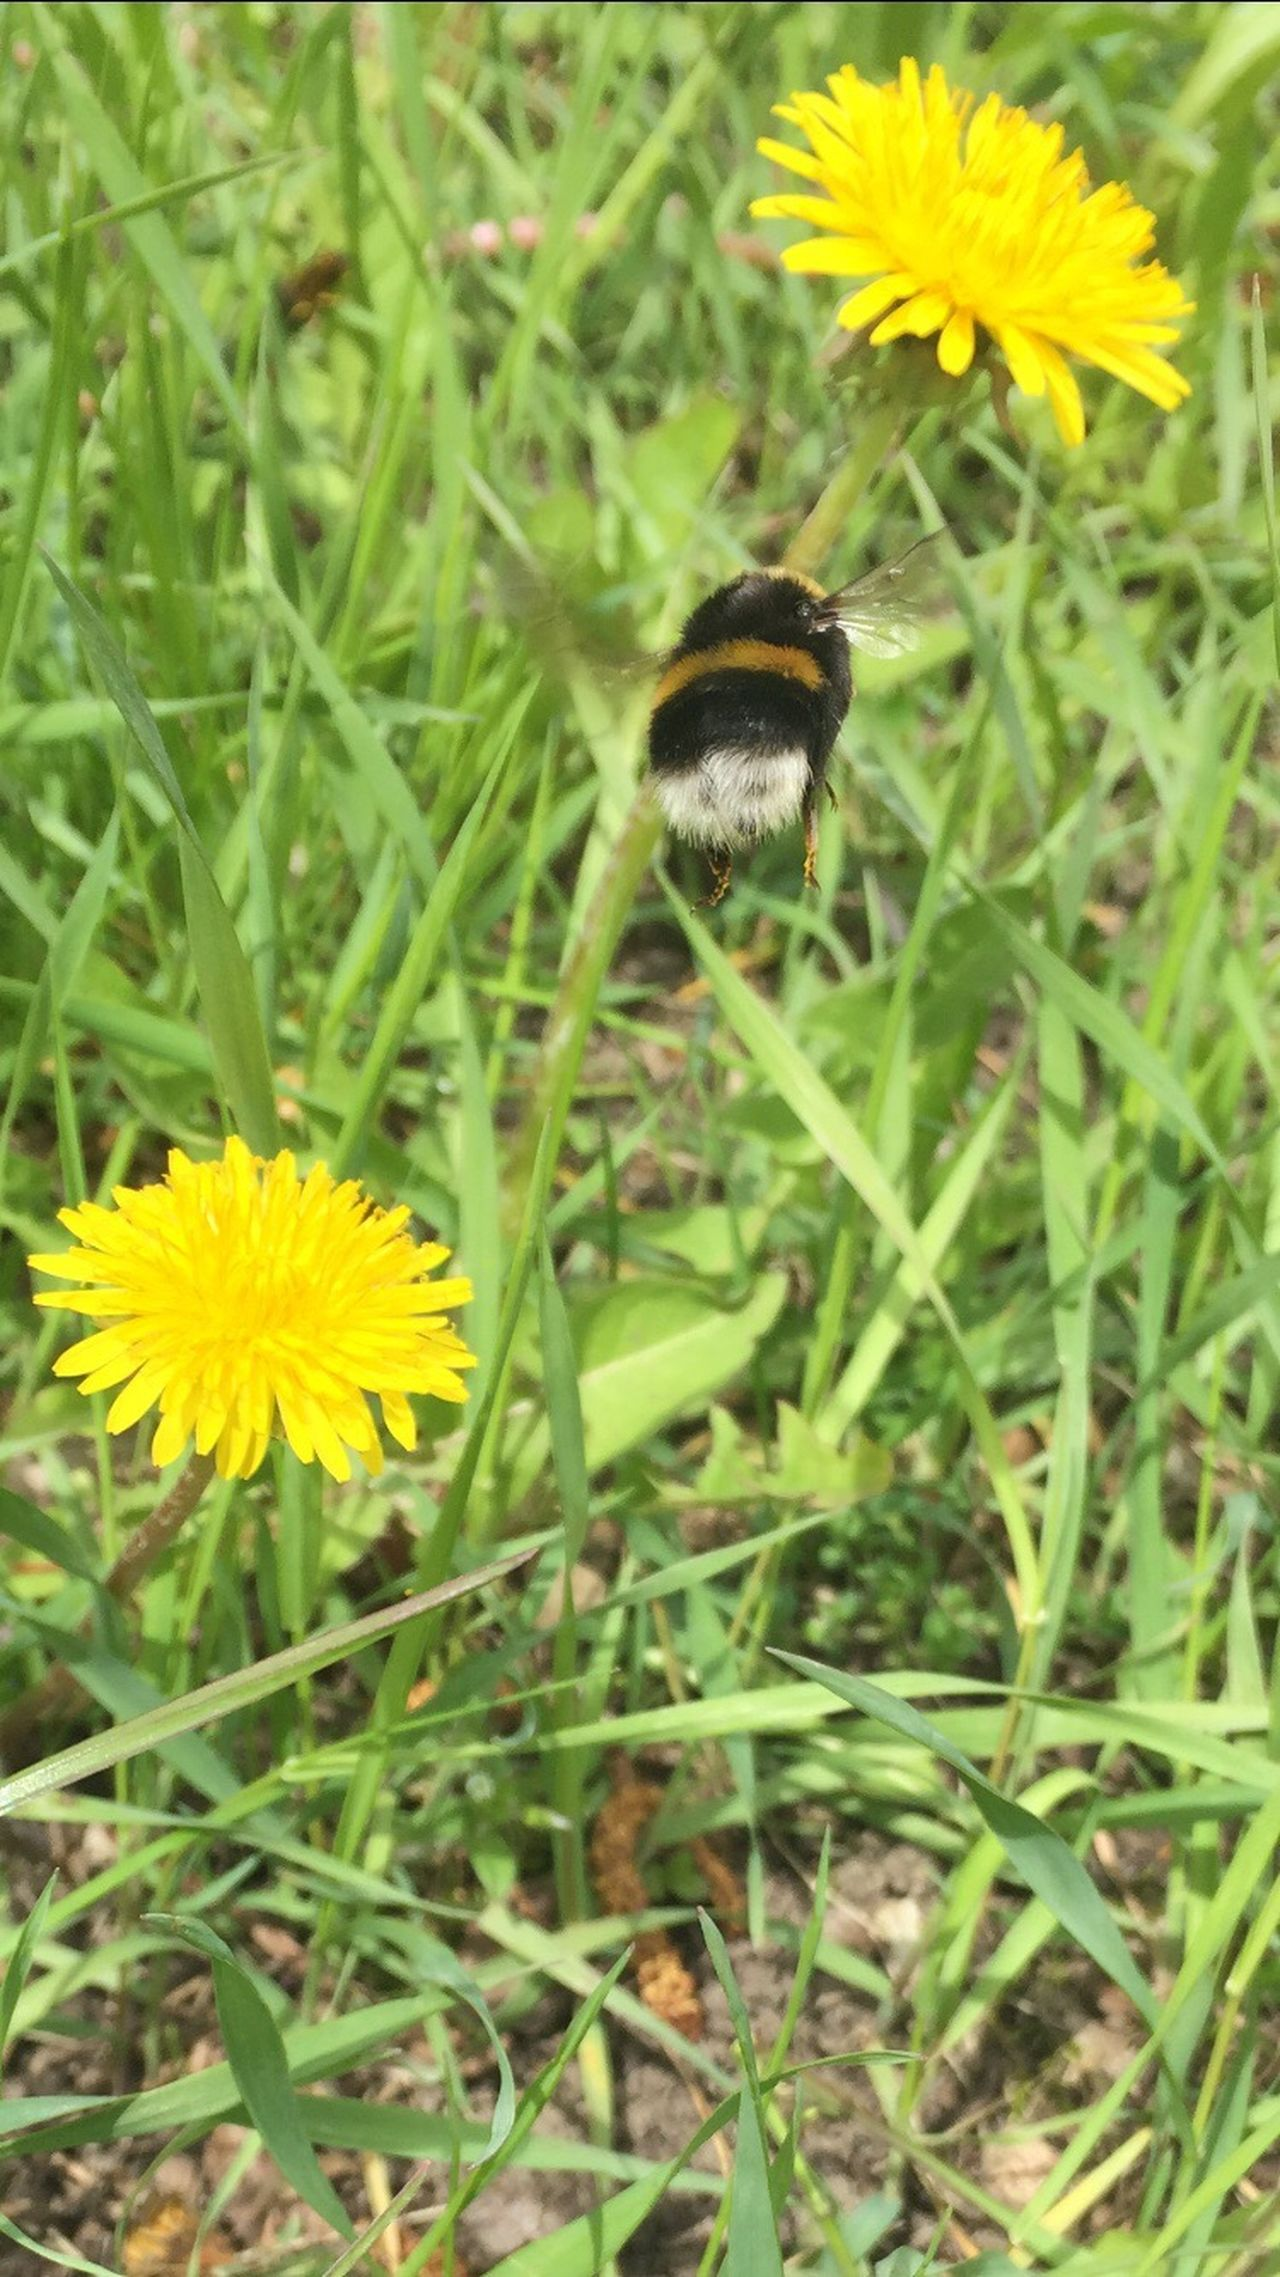 Abflug !!!! Der Frühling kommt 😍🤗 Flower Nature Fragility Beauty In Nature Growth Petal Plant Animal Themes No People Freshness One Animal Yellow Flower Head Animals In The Wild Insect Field Green Color Blooming Outdoors Close-up Spring Hummel Freshness Es Passt Einfach Zusammen ☀️ Wood - Material